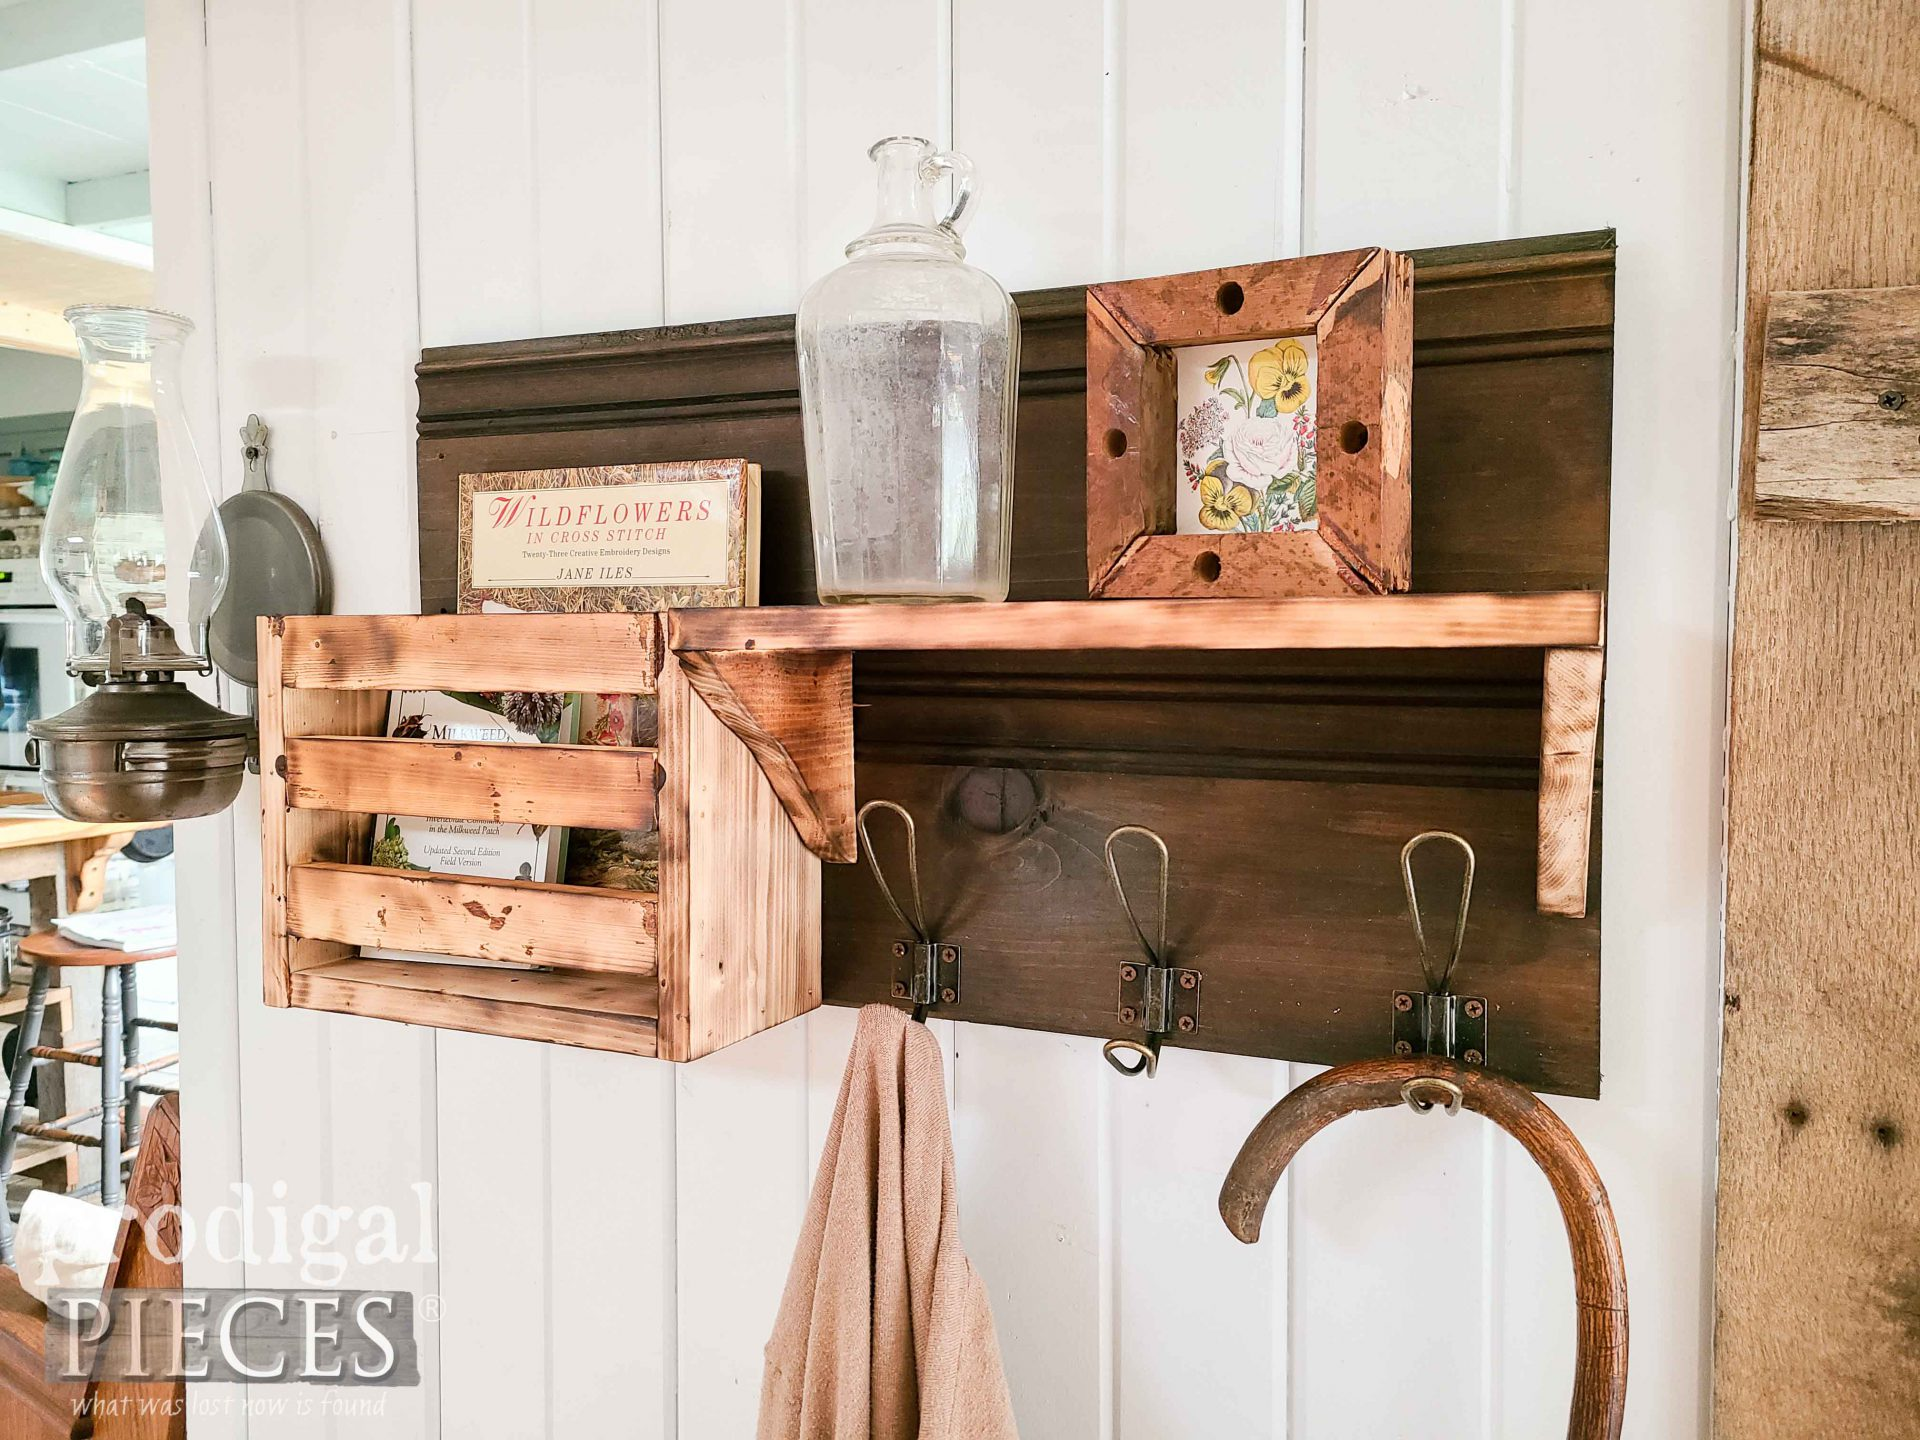 Farmhouse Entry Shelf with Coat Hooks & DIY Scorched Wood Tutorial by Larissa of Prodigal Pieces | prodigalpieces.com #prodigalpieces #farmhouse #diy #tutorial #home